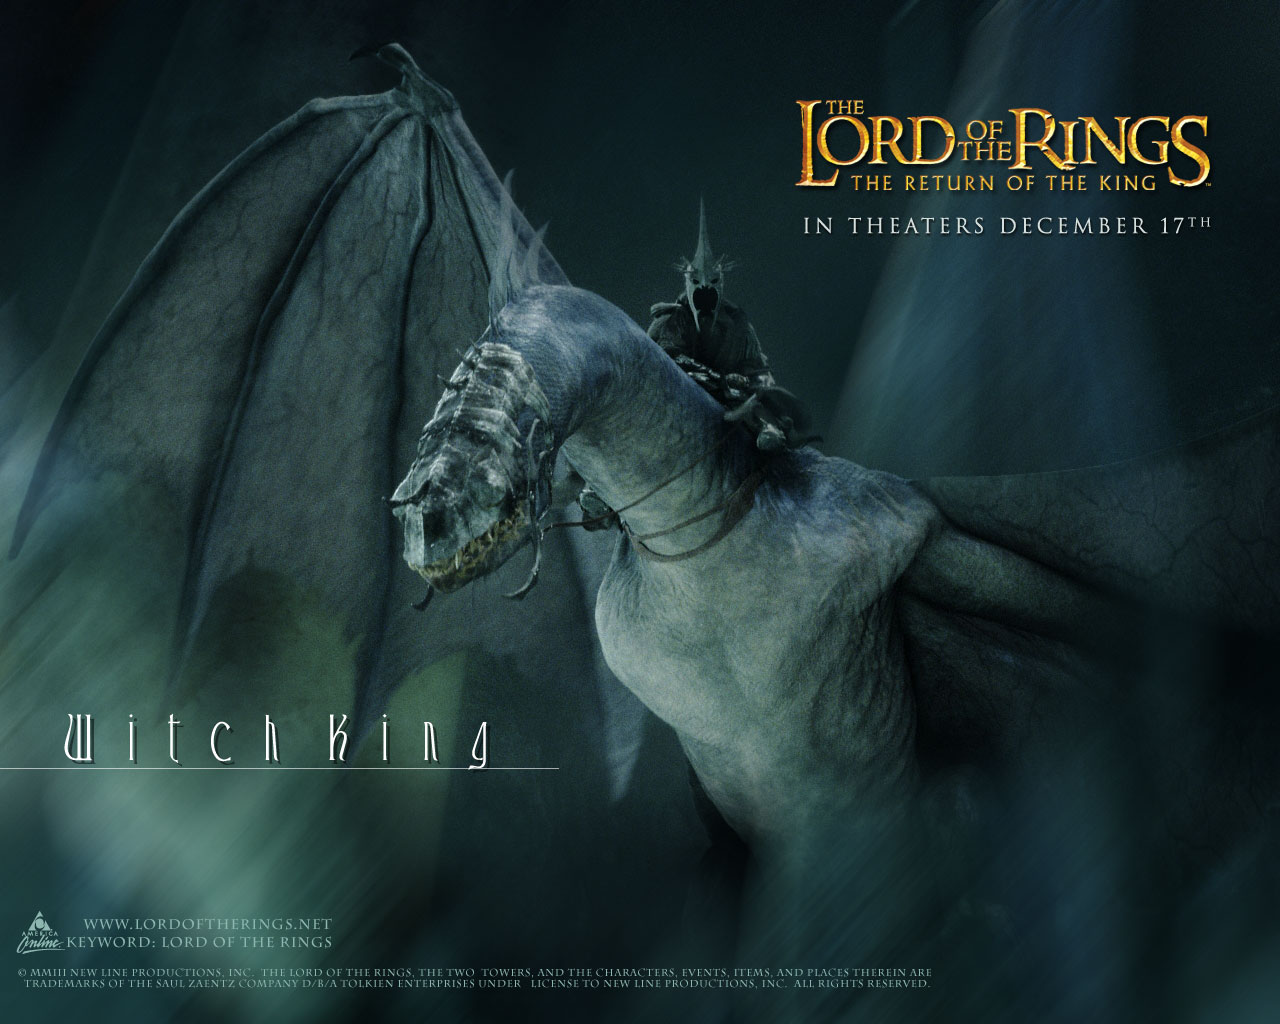 The lord of the rings sll keygen free download